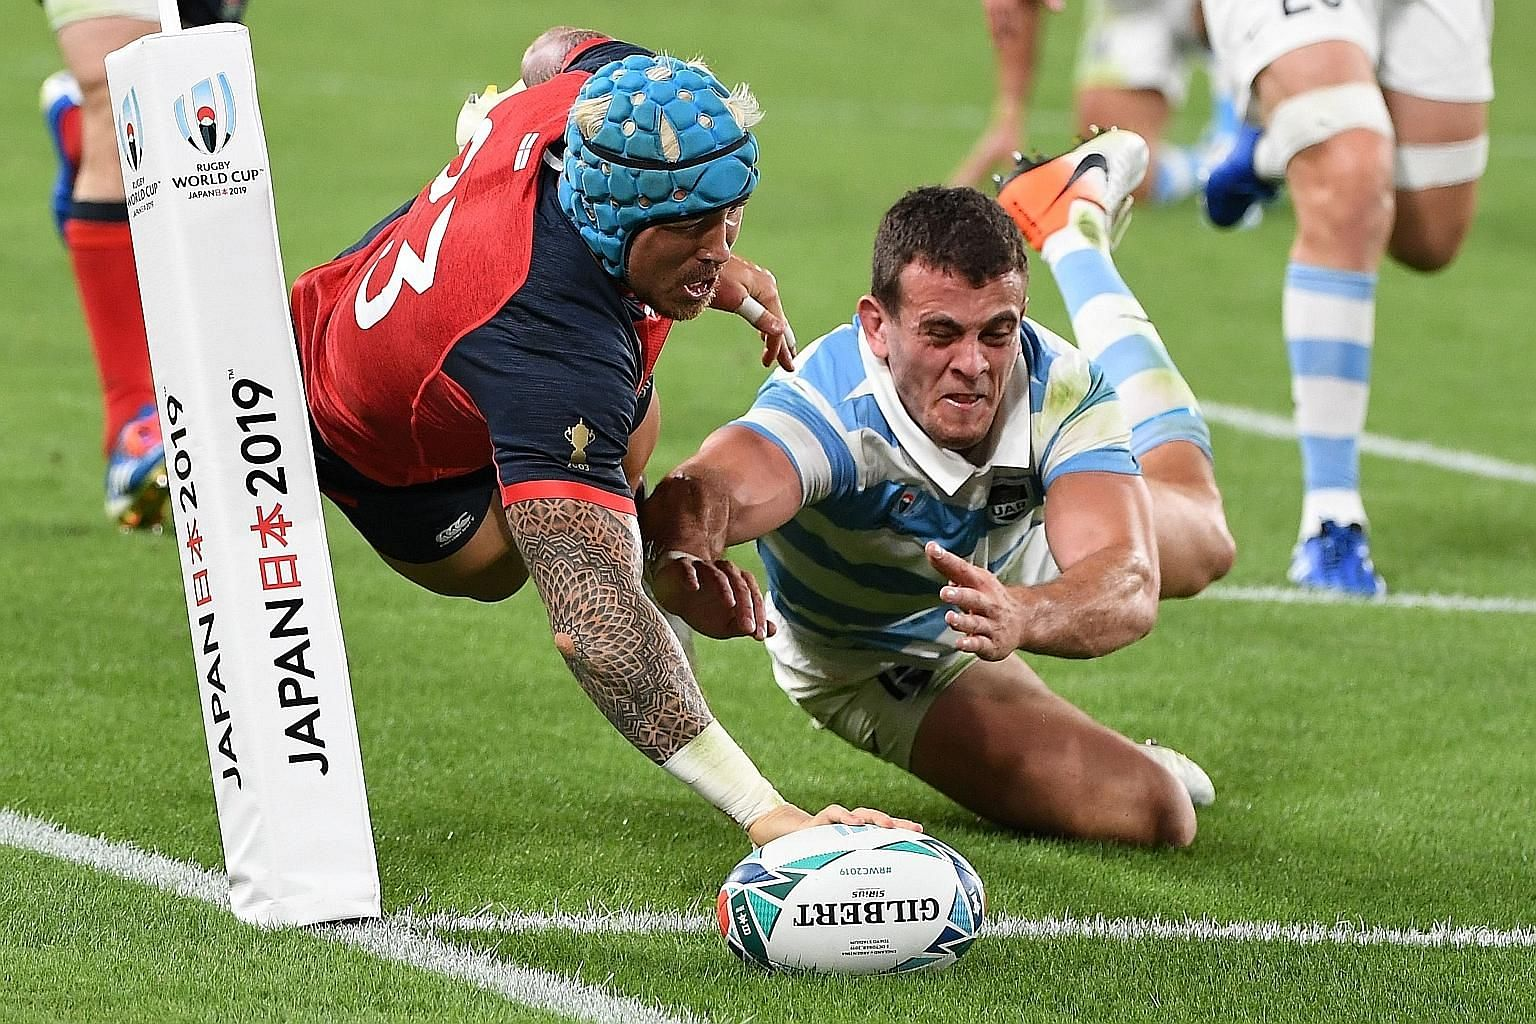 England winger Jack Nowell scoring a try during his team's 39-10 win over Argentina in their Rugby World Cup Pool C match at the Tokyo Stadium yesterday. PHOTO: AGENCE FRANCE-PRESSE